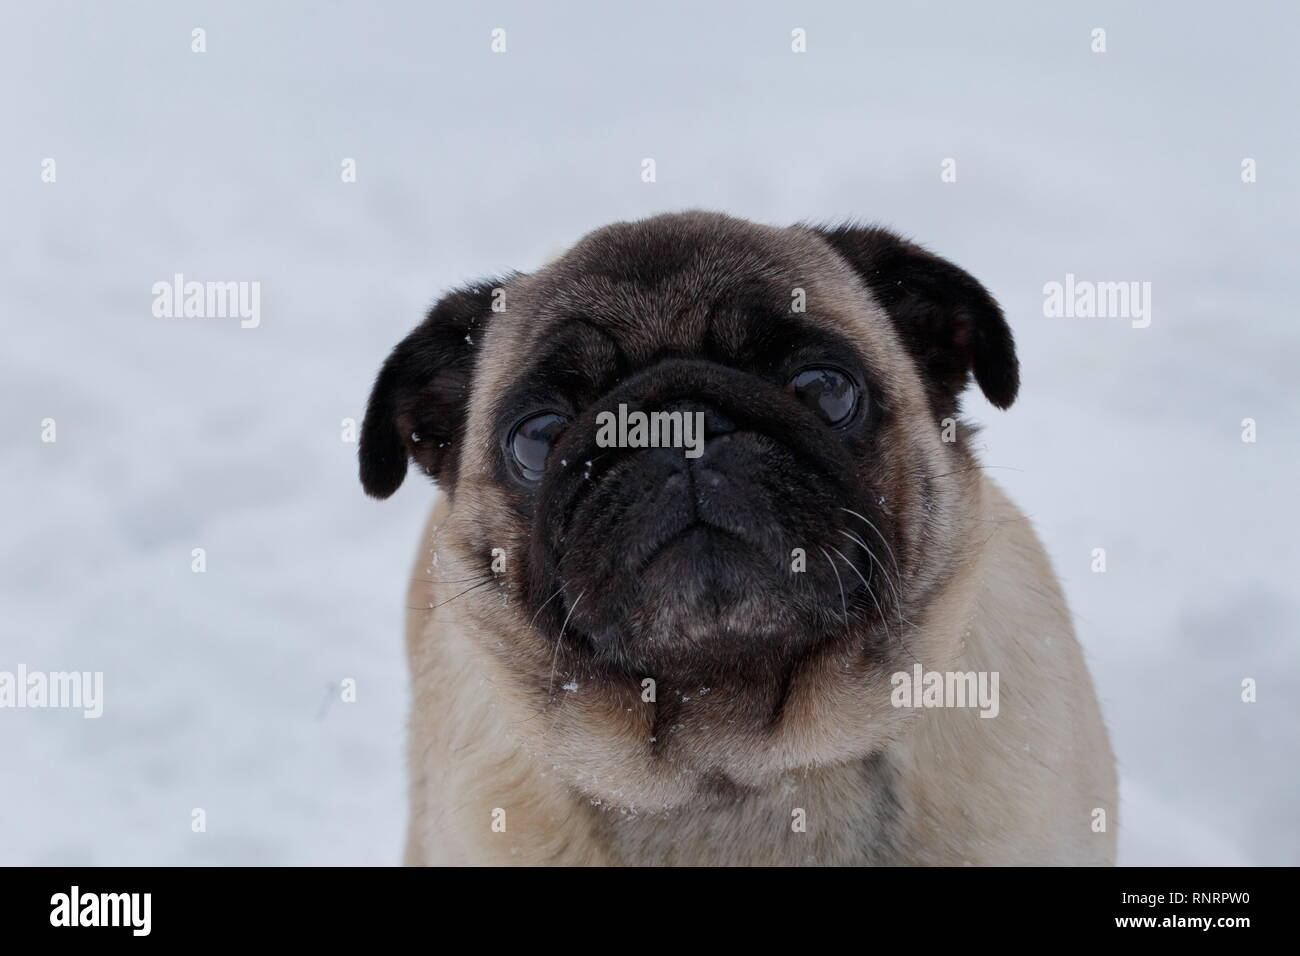 Cute chinese pug puppy is looking at the camera. Dutch mastiff or mops. Pet animals. Purebred dog. - Stock Image